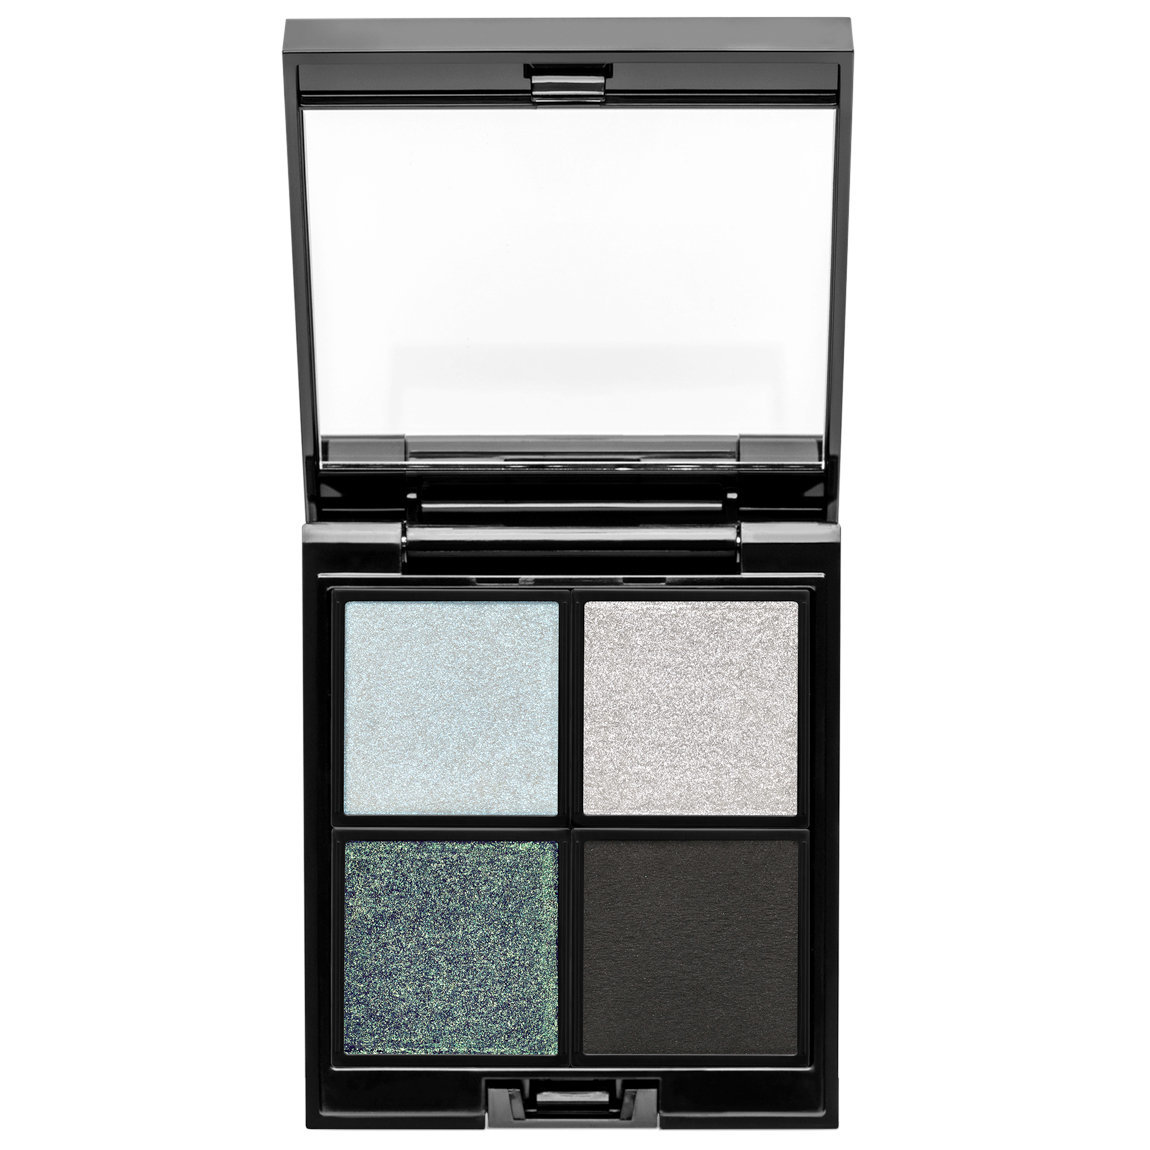 Surratt Beauty Les Etoiles Palette Supernova alternative view 1.